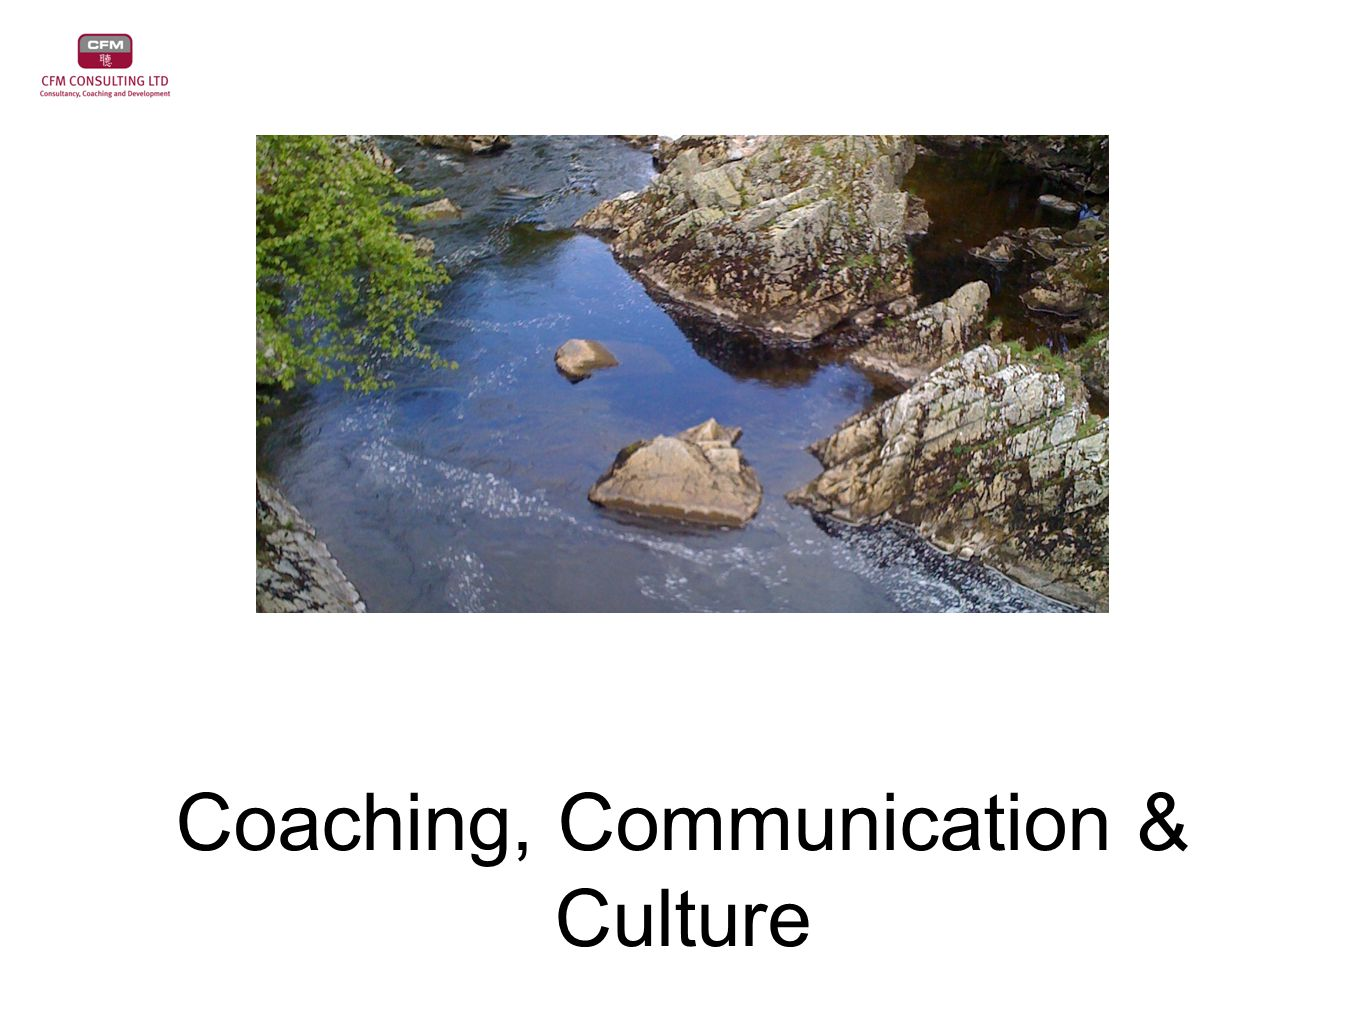 Coaching, Communication & Culture